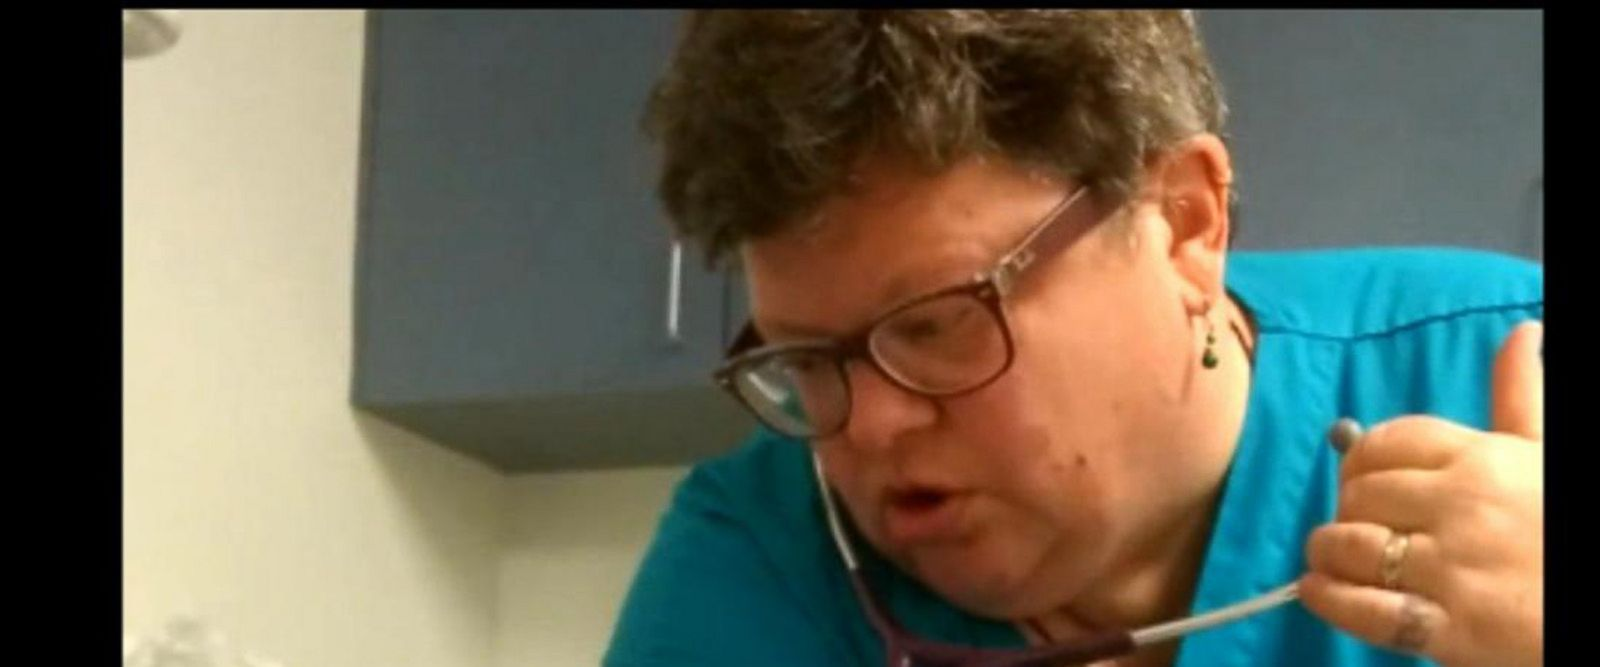 VIDEO: A California hospital suspends an ER doctor for cursing and mocking a patient